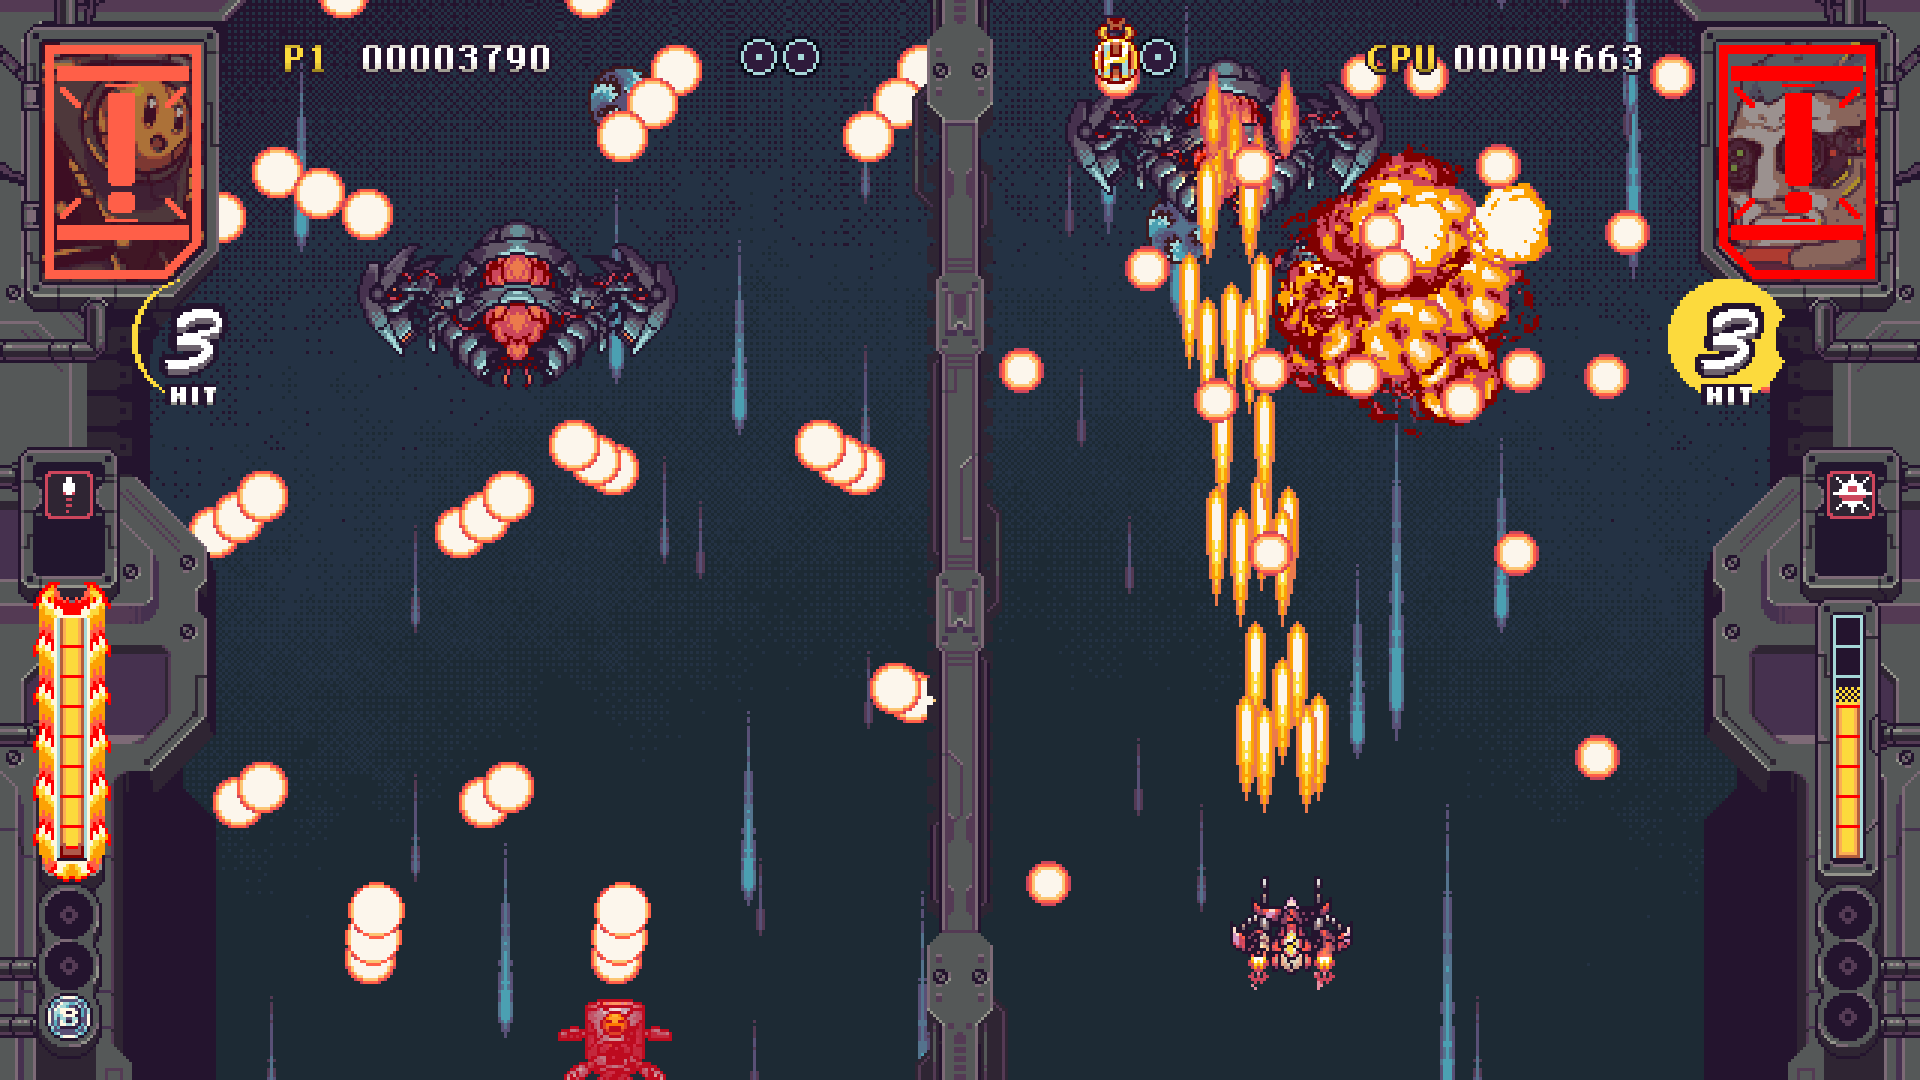 Rival Megagun gameplay screenshot 13